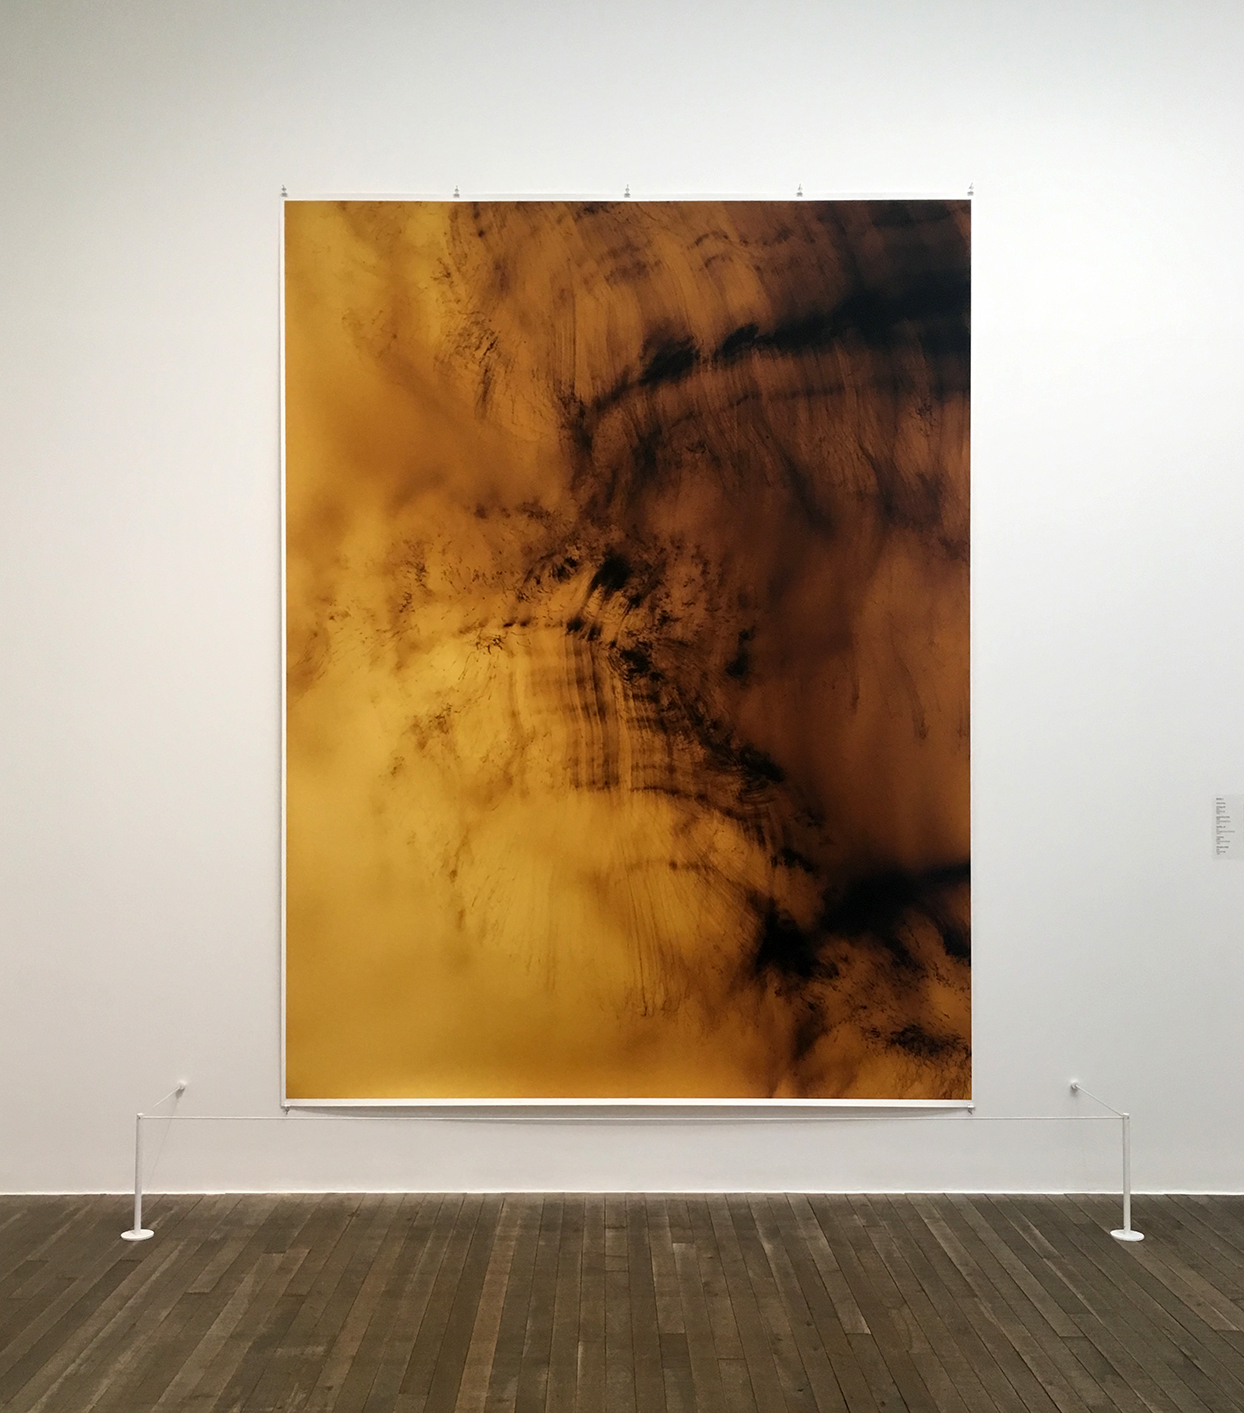 Wolfgang Tillmans digital inkjet